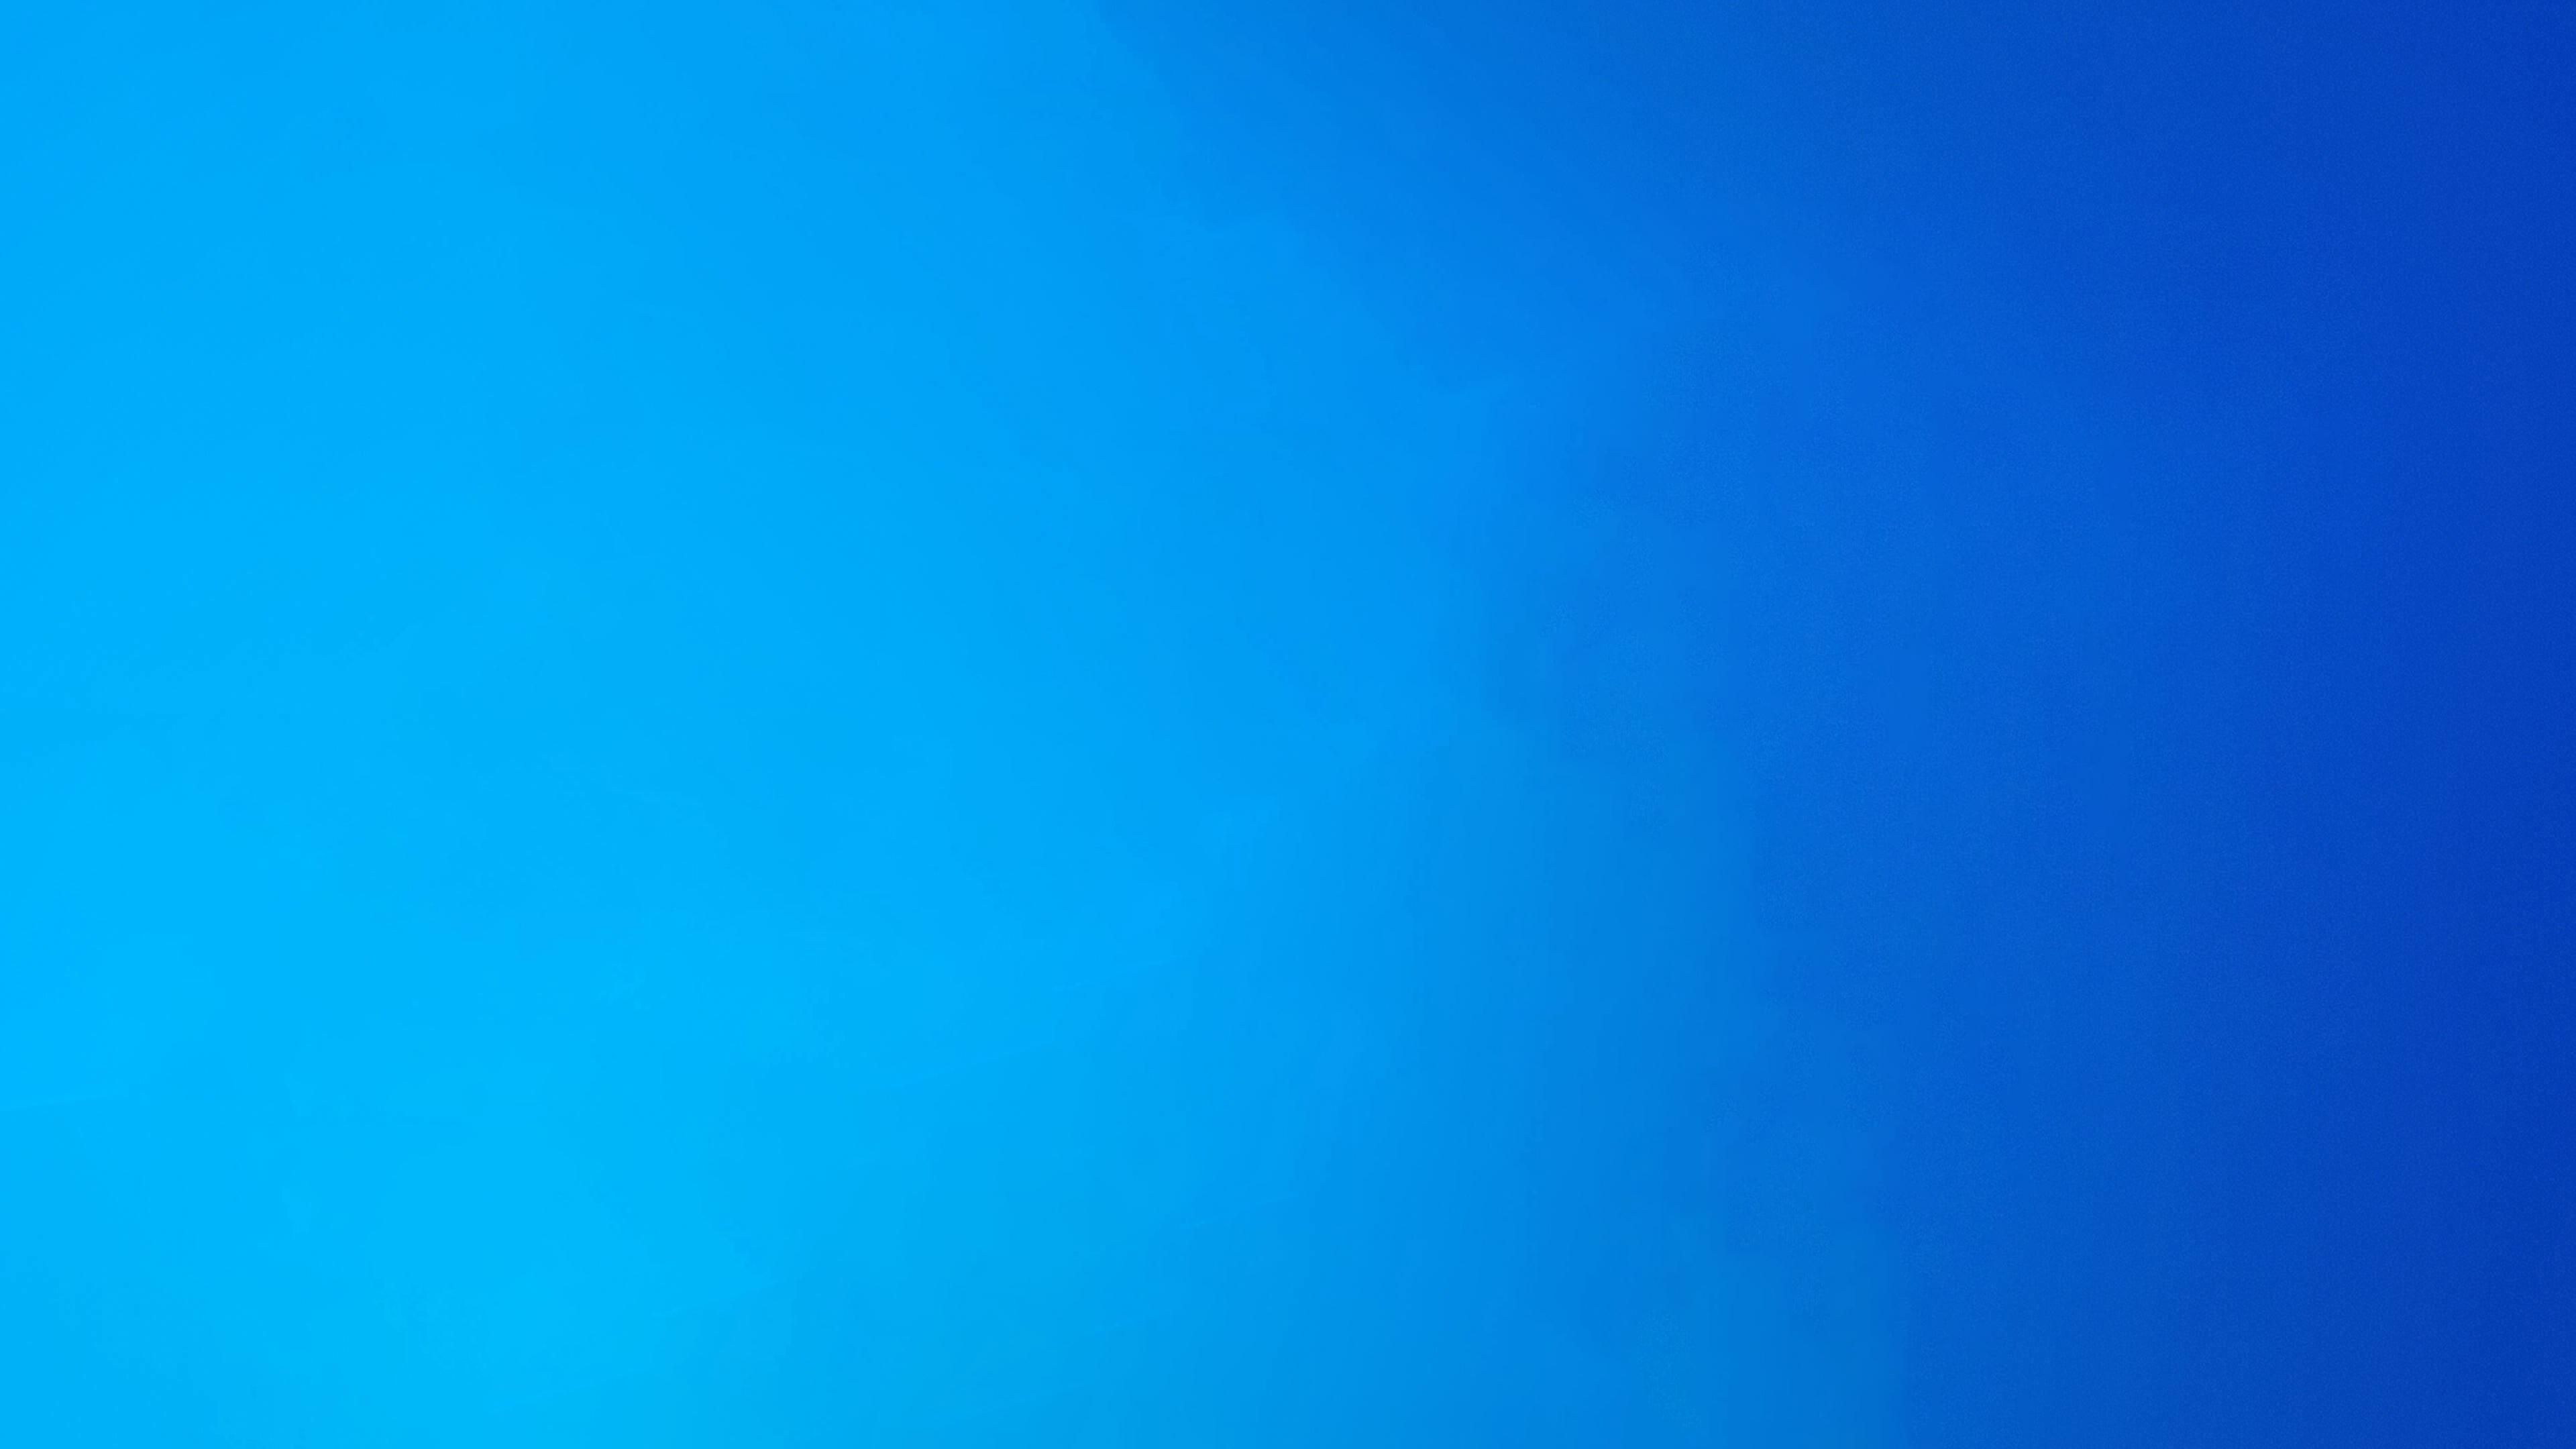 Windows 10 Light Wallpaper Without The Logo Solid Color Backgrounds Blue Shades Colors Purple Wallpaper